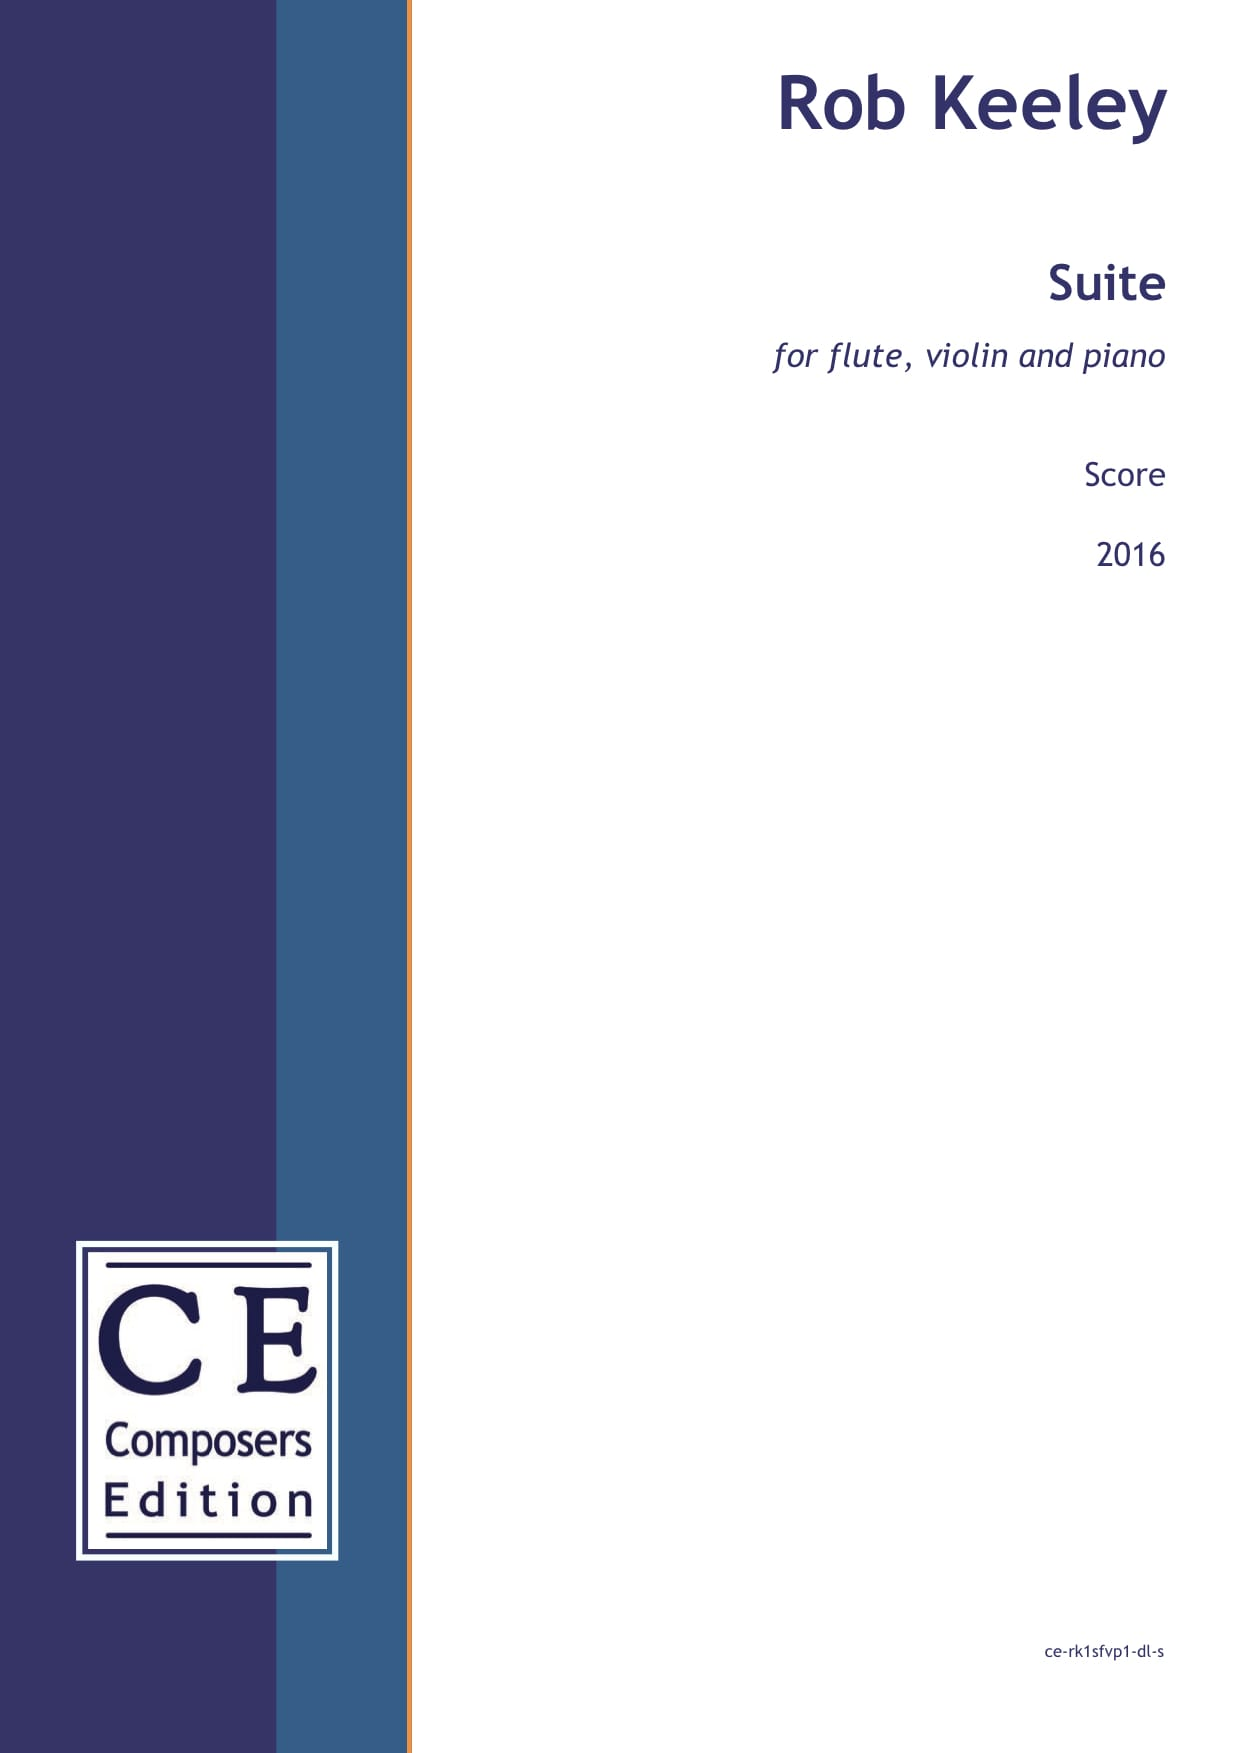 Rob Keeley: Suite for flute, violin and piano